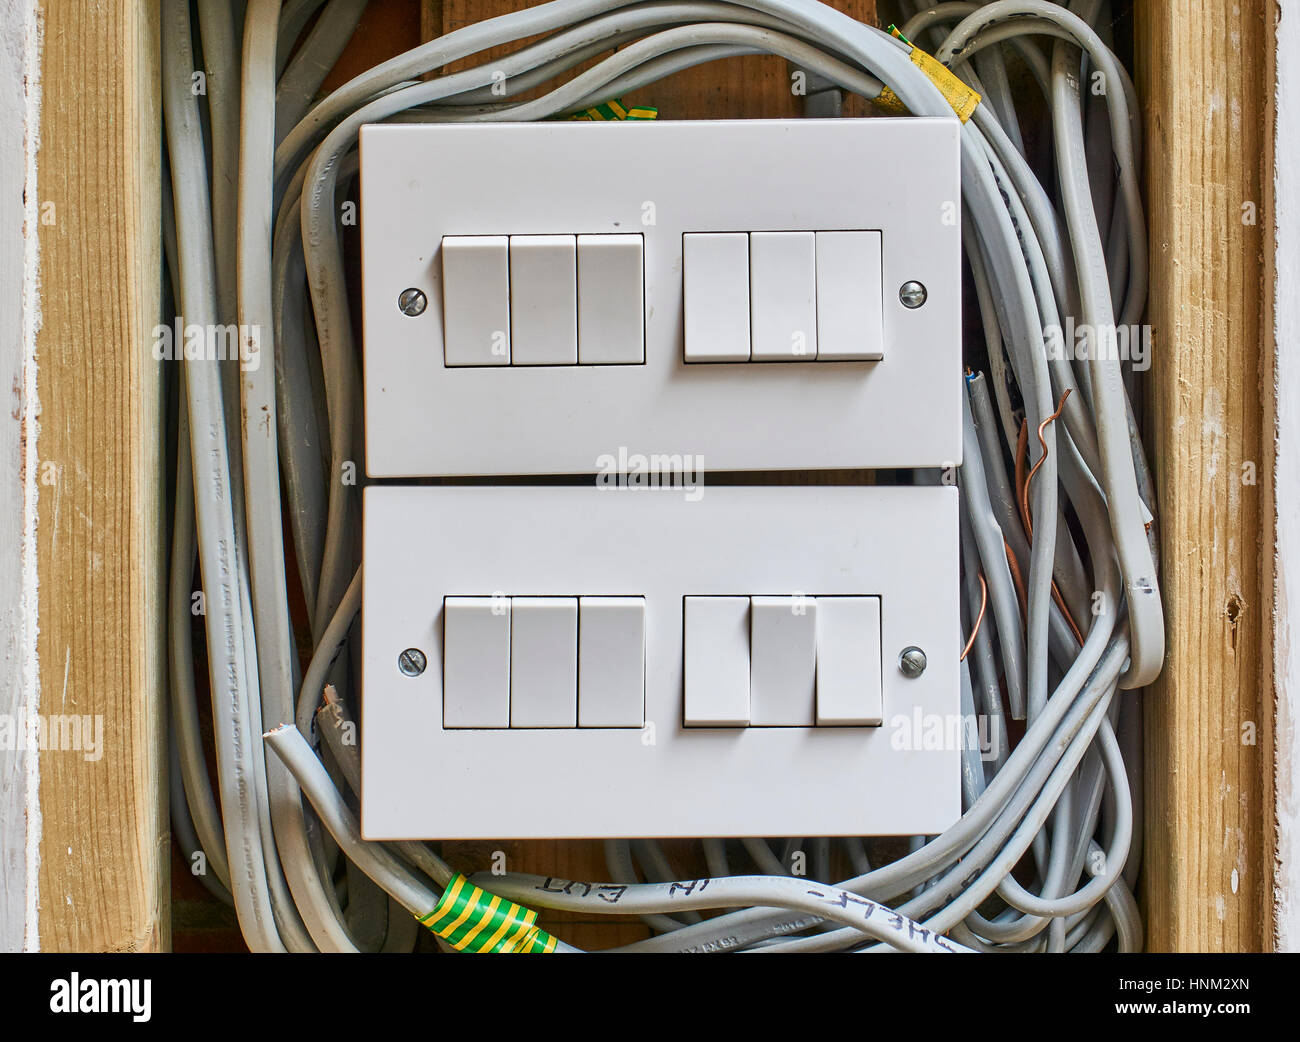 Electrical Wiring Mess Stock Photos & Electrical Wiring Mess Stock ...